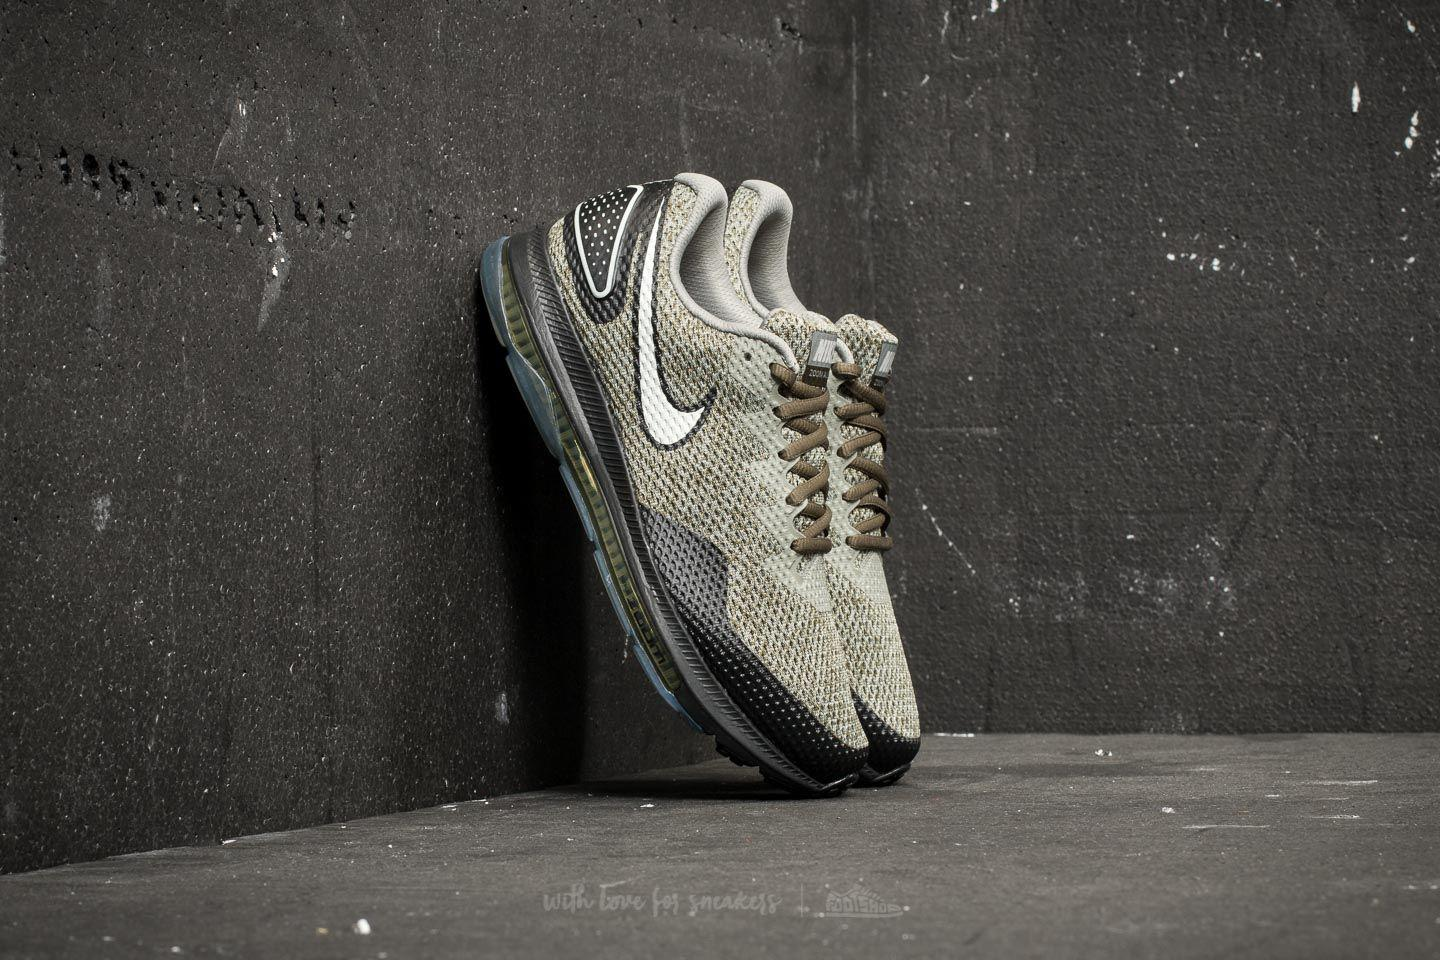 73c954d7c1a1 Lyst - Nike Zoom All Out Low 2 Cargo Khaki  Light Bone-black in ...